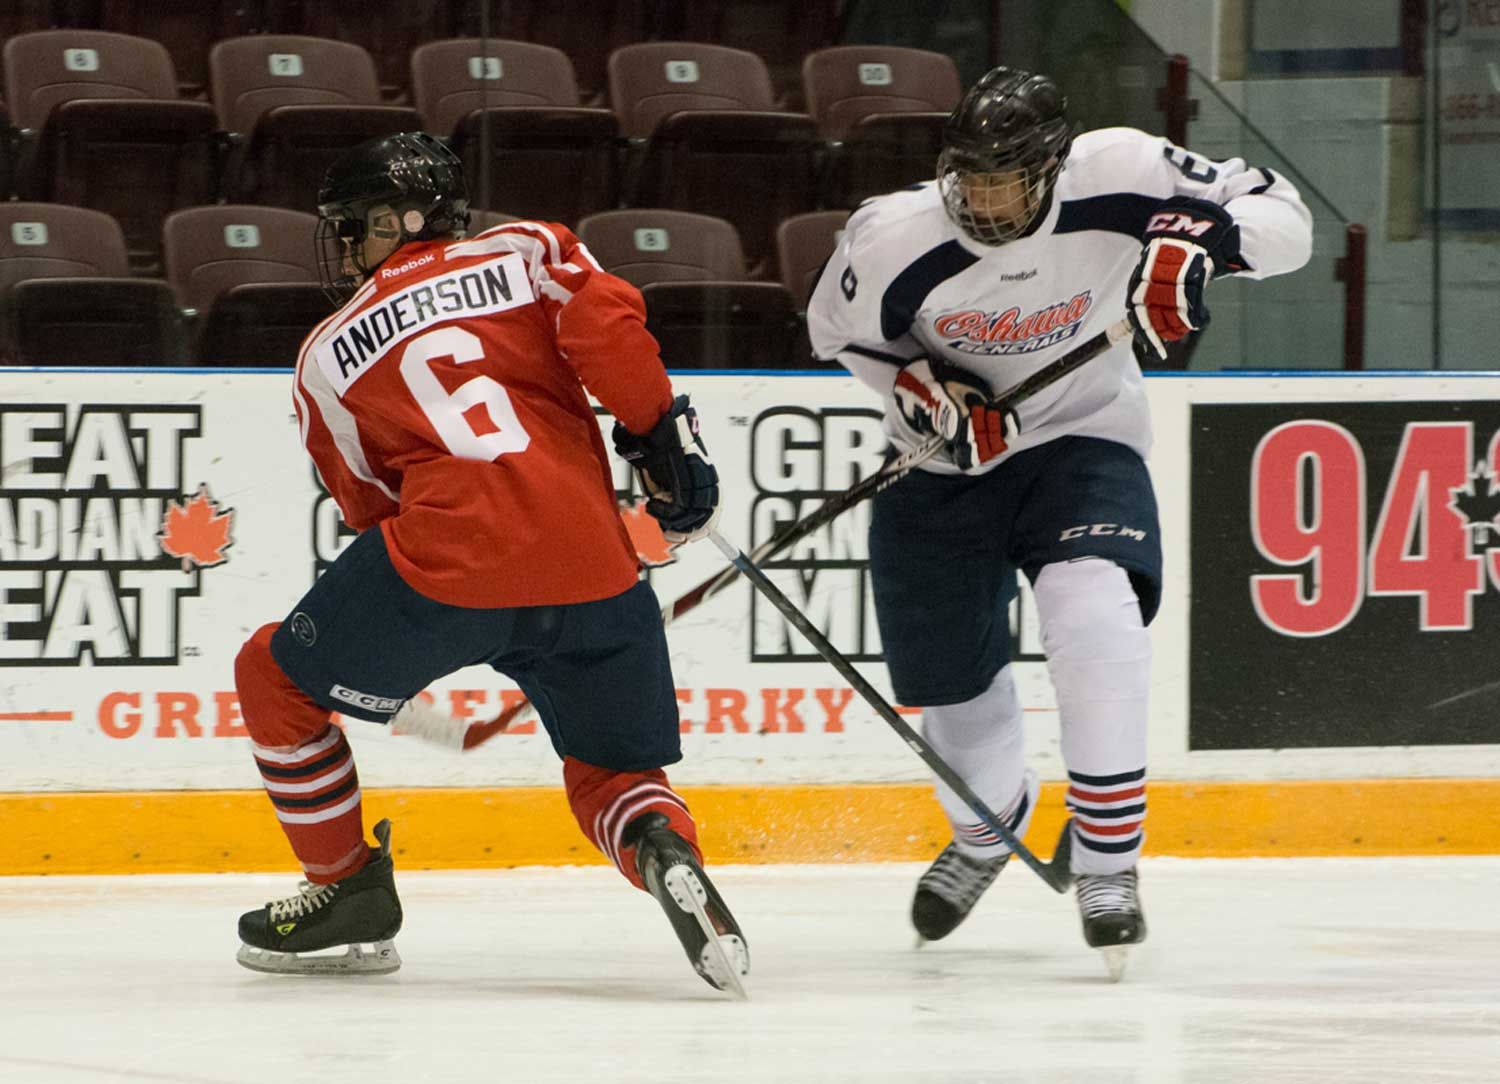 Rookie Serron Noel, the Oshawa Generals second round pick, 25th overall in the 2016 OHL draft attempts to slide the puck past Josh Anderson. Anderson was one of a selected group of free agents invited to the Oshawa Generals Orientation Camp on April 23 and 24 at the General Motors Centre.